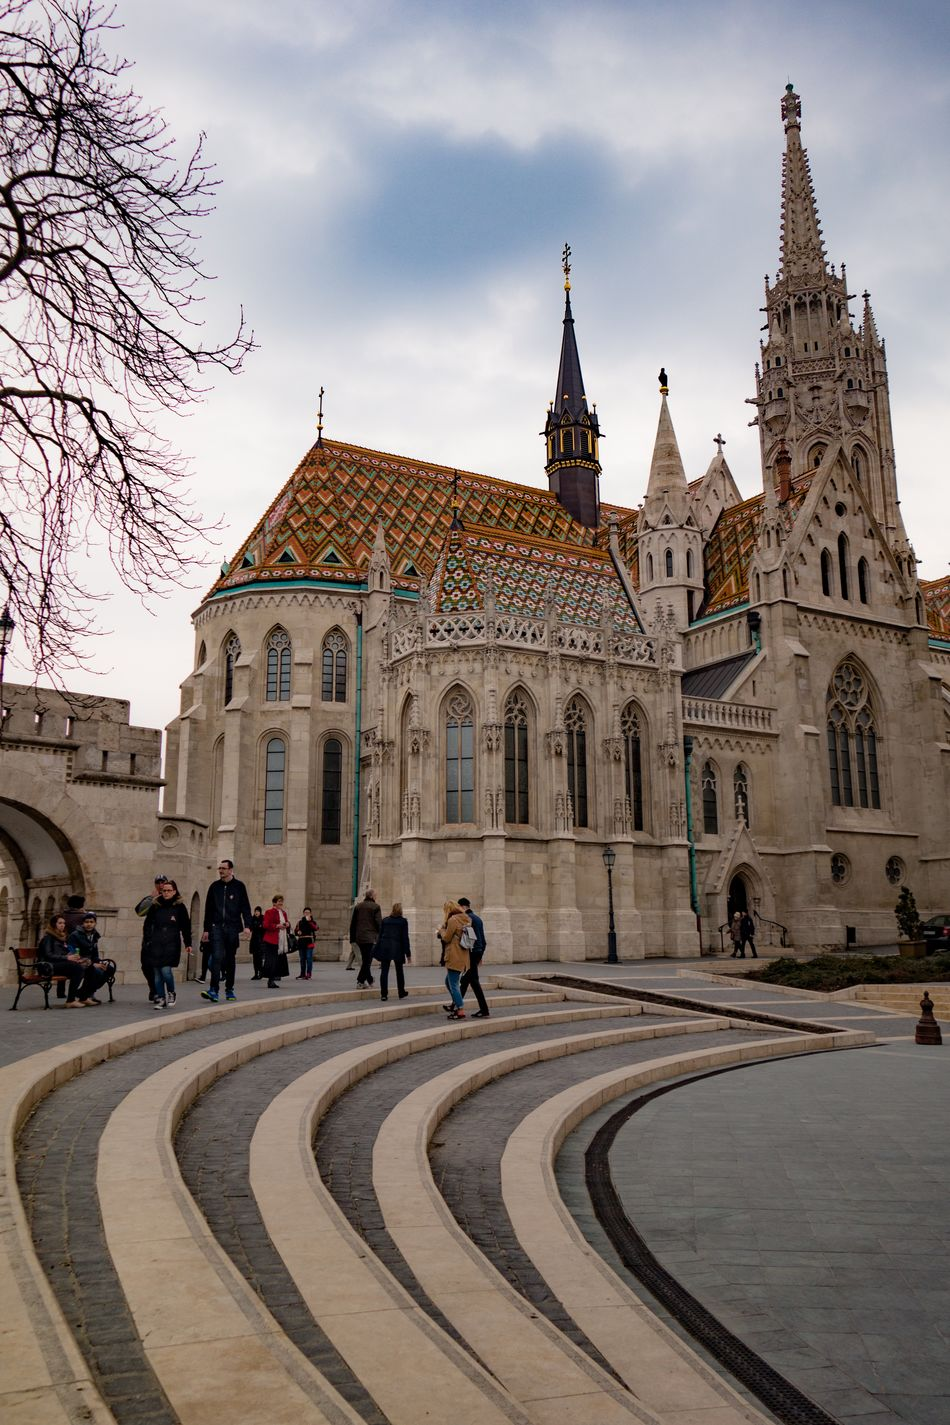 Architecture Building Exterior Built Structure City Day History Large Group Of People Outdoors People Politics Sky Tourism Tourist Travel Travel Destinations Vacations